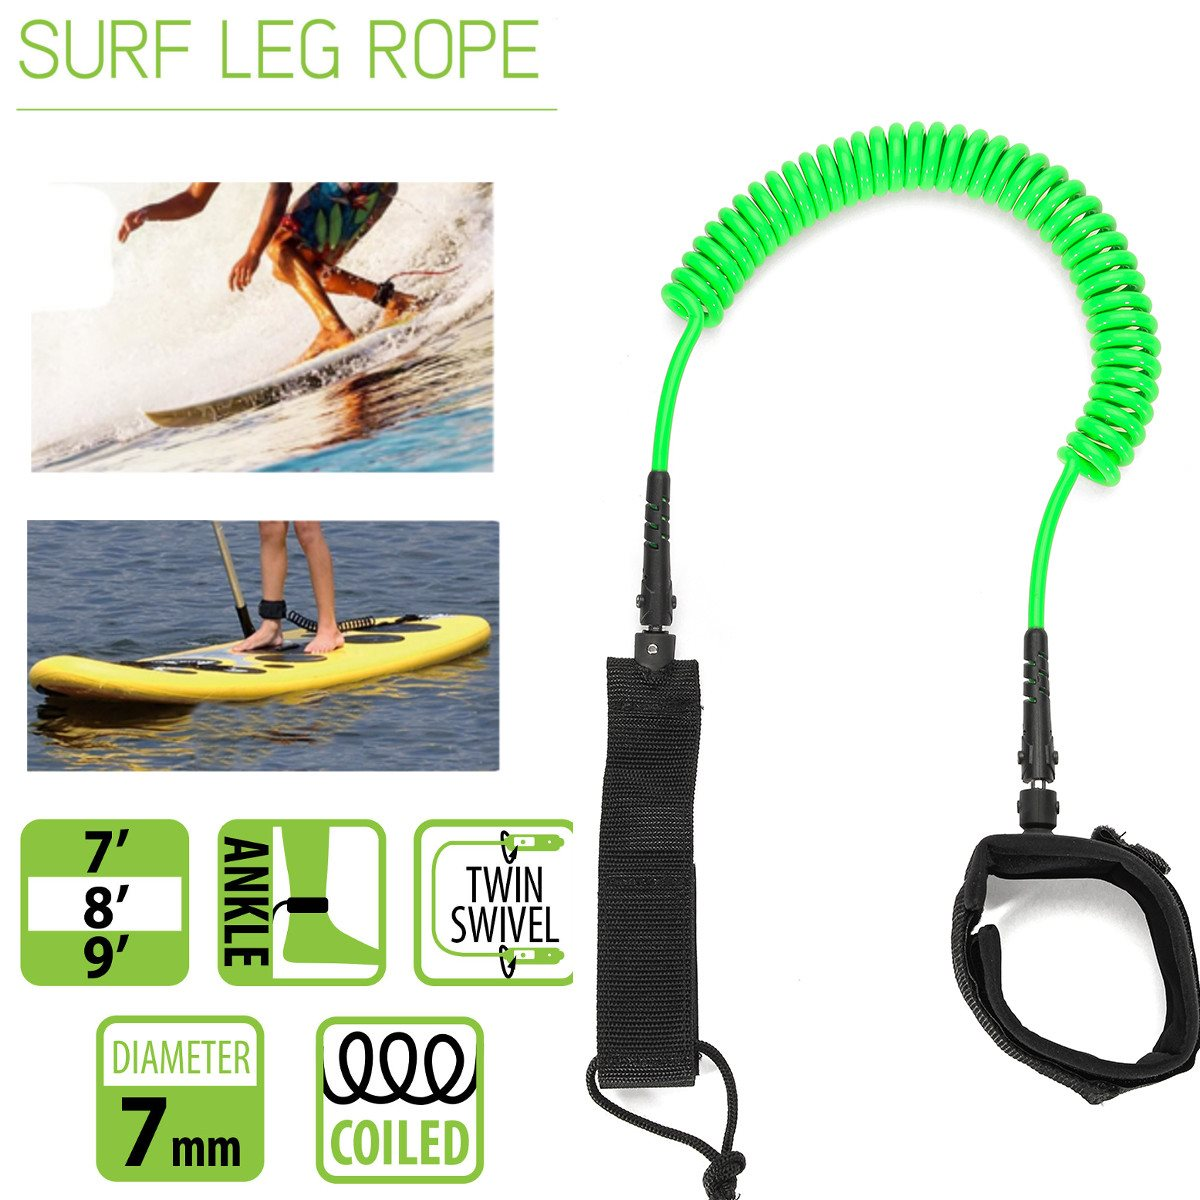 10ft 7mm SUP Ankle Leine Surfbrett Coiled Stand UP Paddle Board TPU paddle board seil surfen zubehör